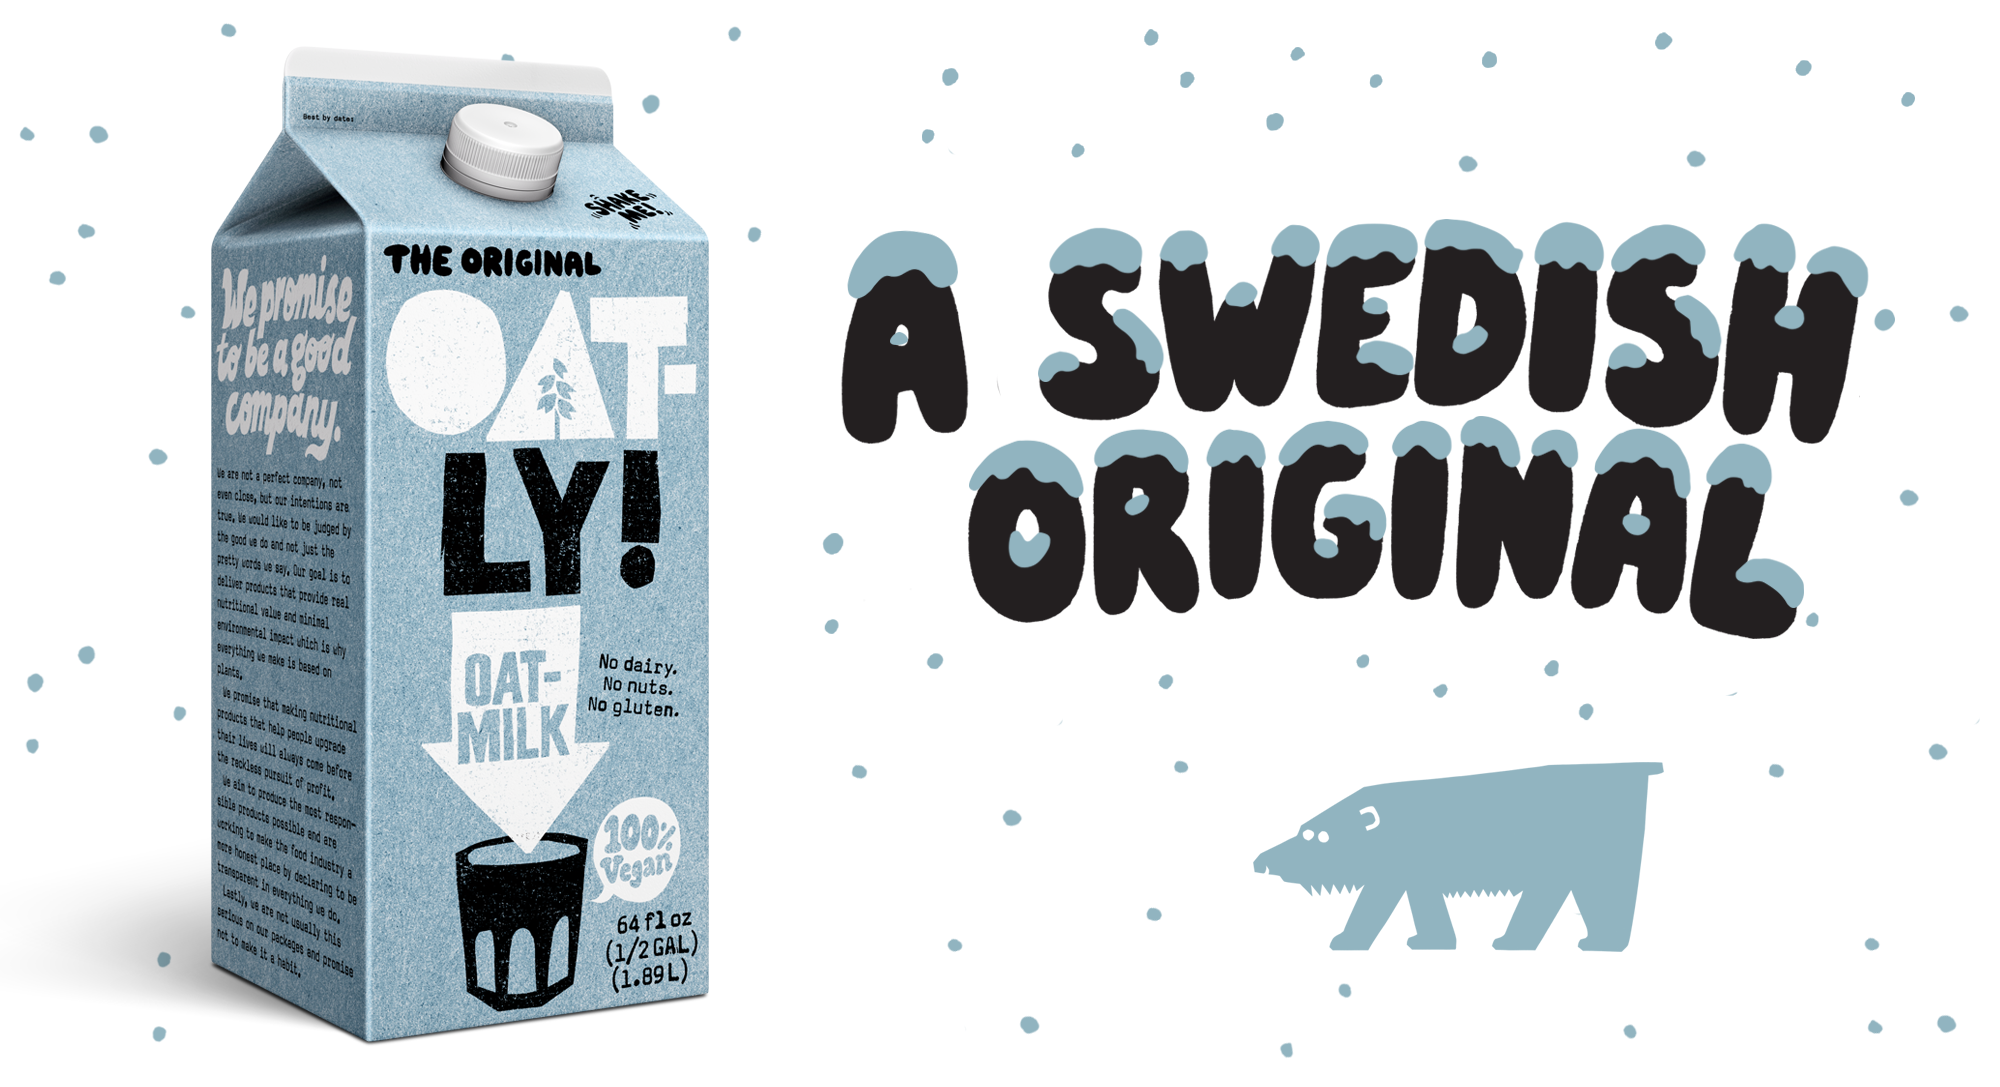 "Image of Thirty years ago there was no Oatly, just some researchers at a university in a country mistakenly known for polar bears roaming the streets, nerding out on ways to turn oats into milk. And now here you are reading about the invention of the world's first oatmilk and you can even order some and try it <a href=""https://us.oatly.com/products/oatmilk-chilled"" style=""font-weight:bold"">here</a>. Or if you think that was kind of a hard sales pitch and you were just getting into the story, click <a href=""https://us.oatly.com/pages/the-oatly-way"" style=""font-weight:bold"">here</a>."